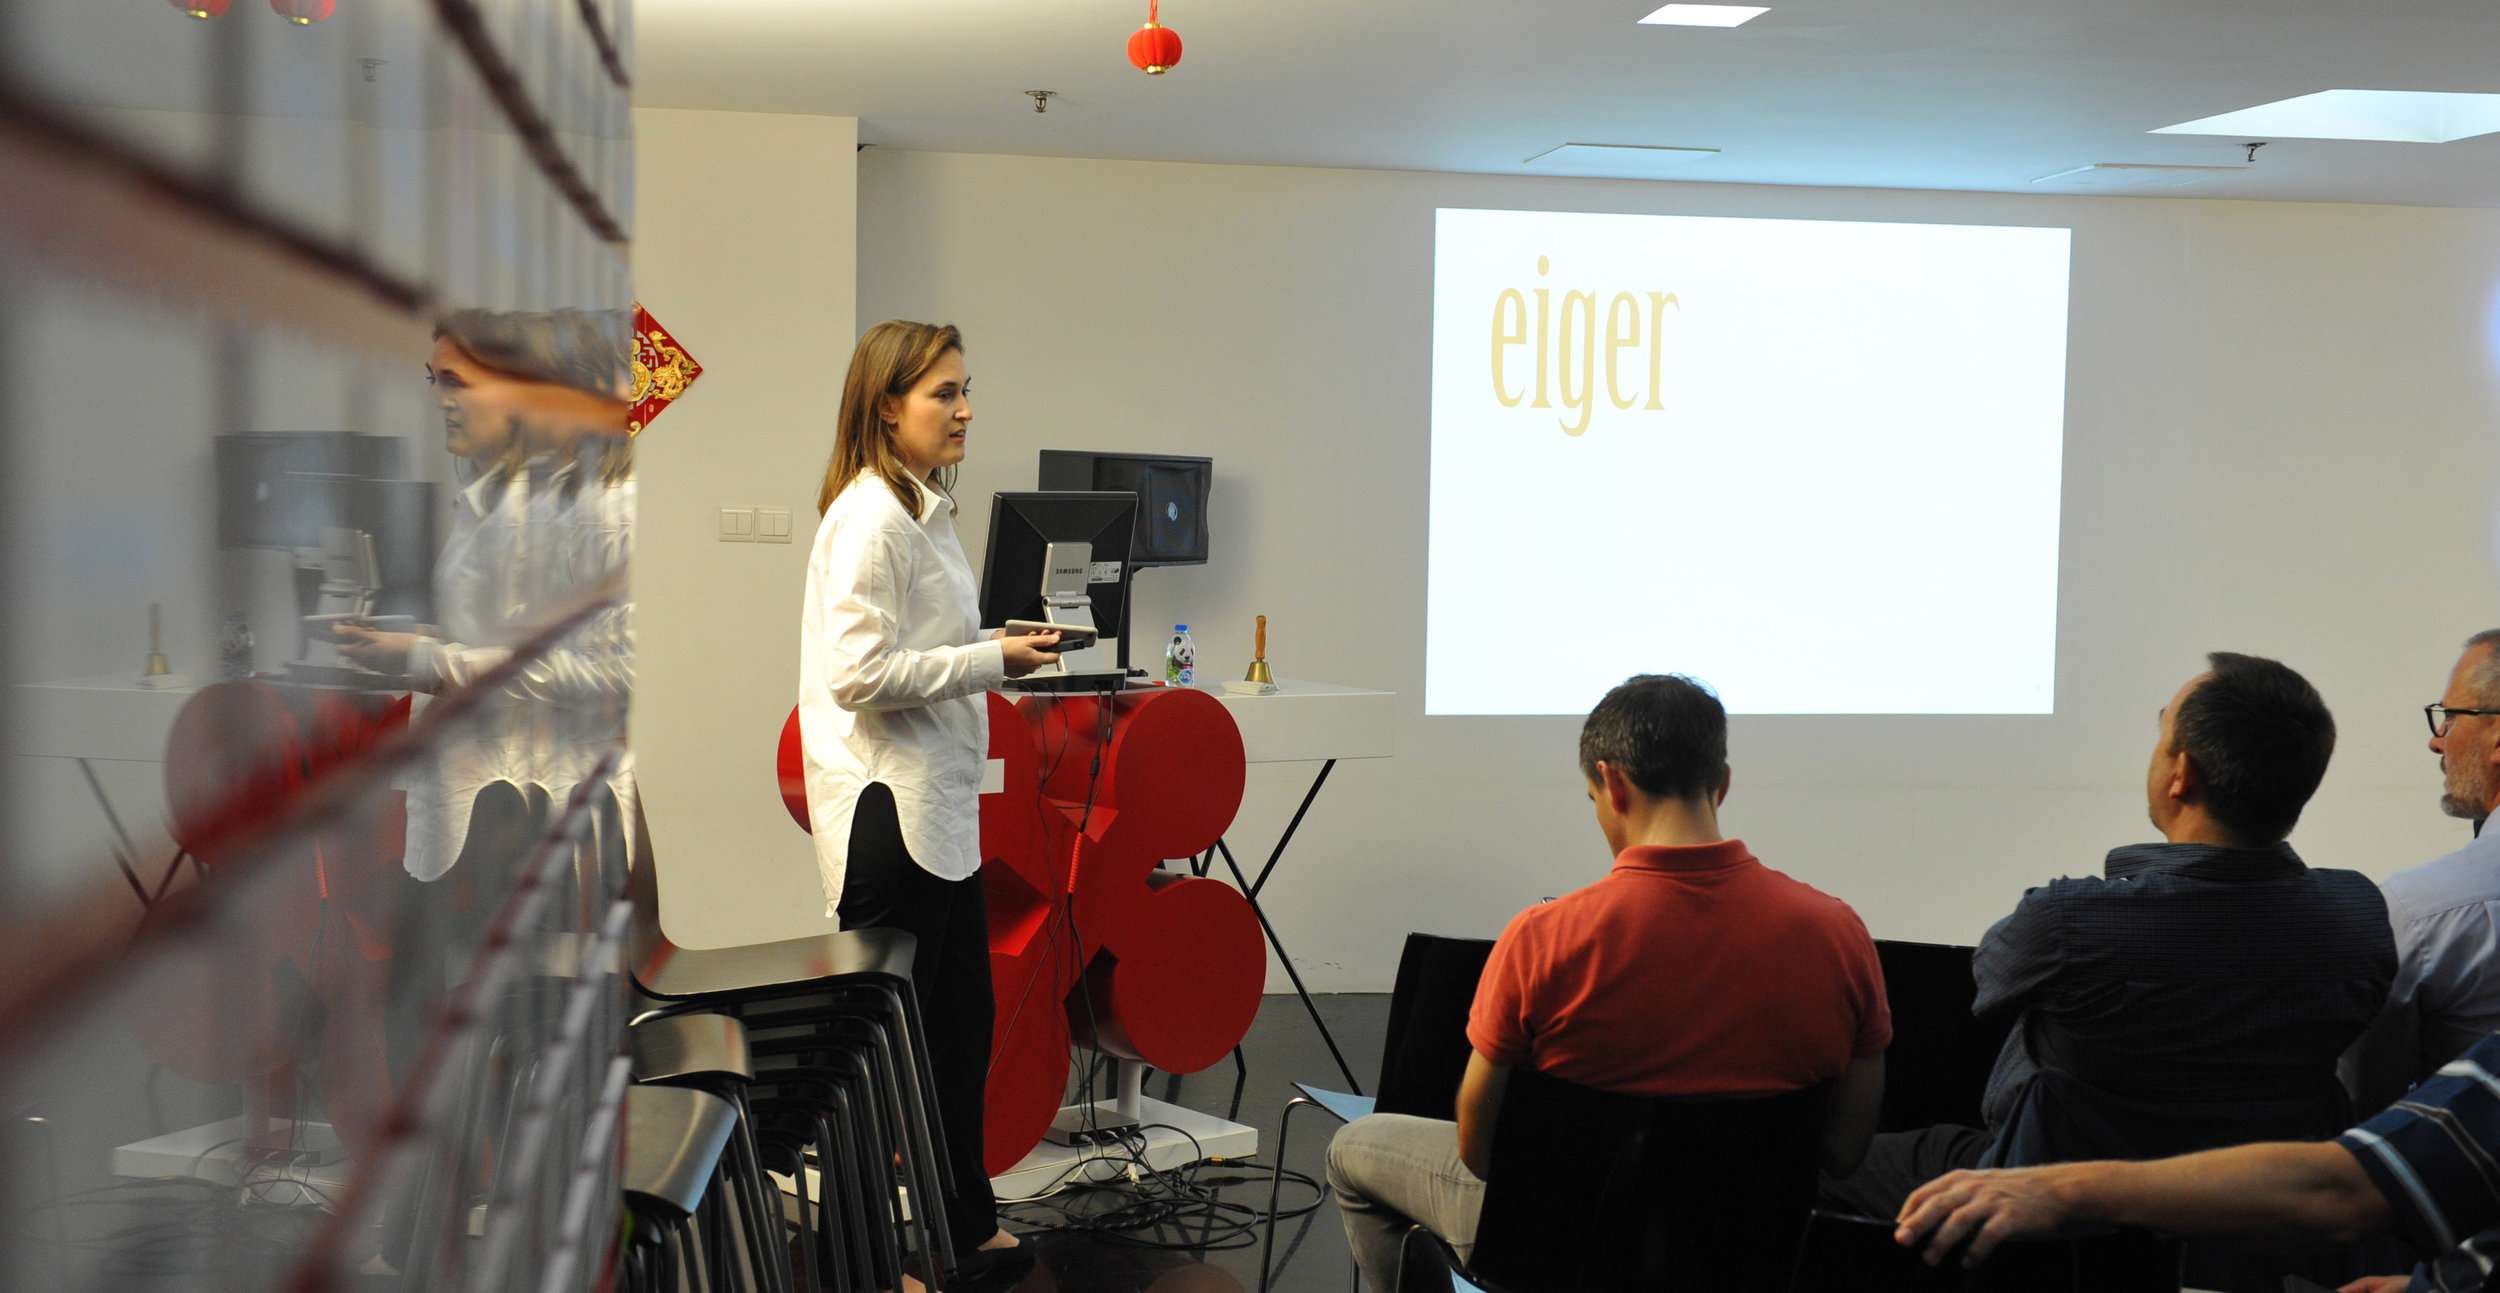 The group was then instructed by Gianna Abegg, Swiss-Attorney-at-Law of eiger about legal issues when doing business in China.